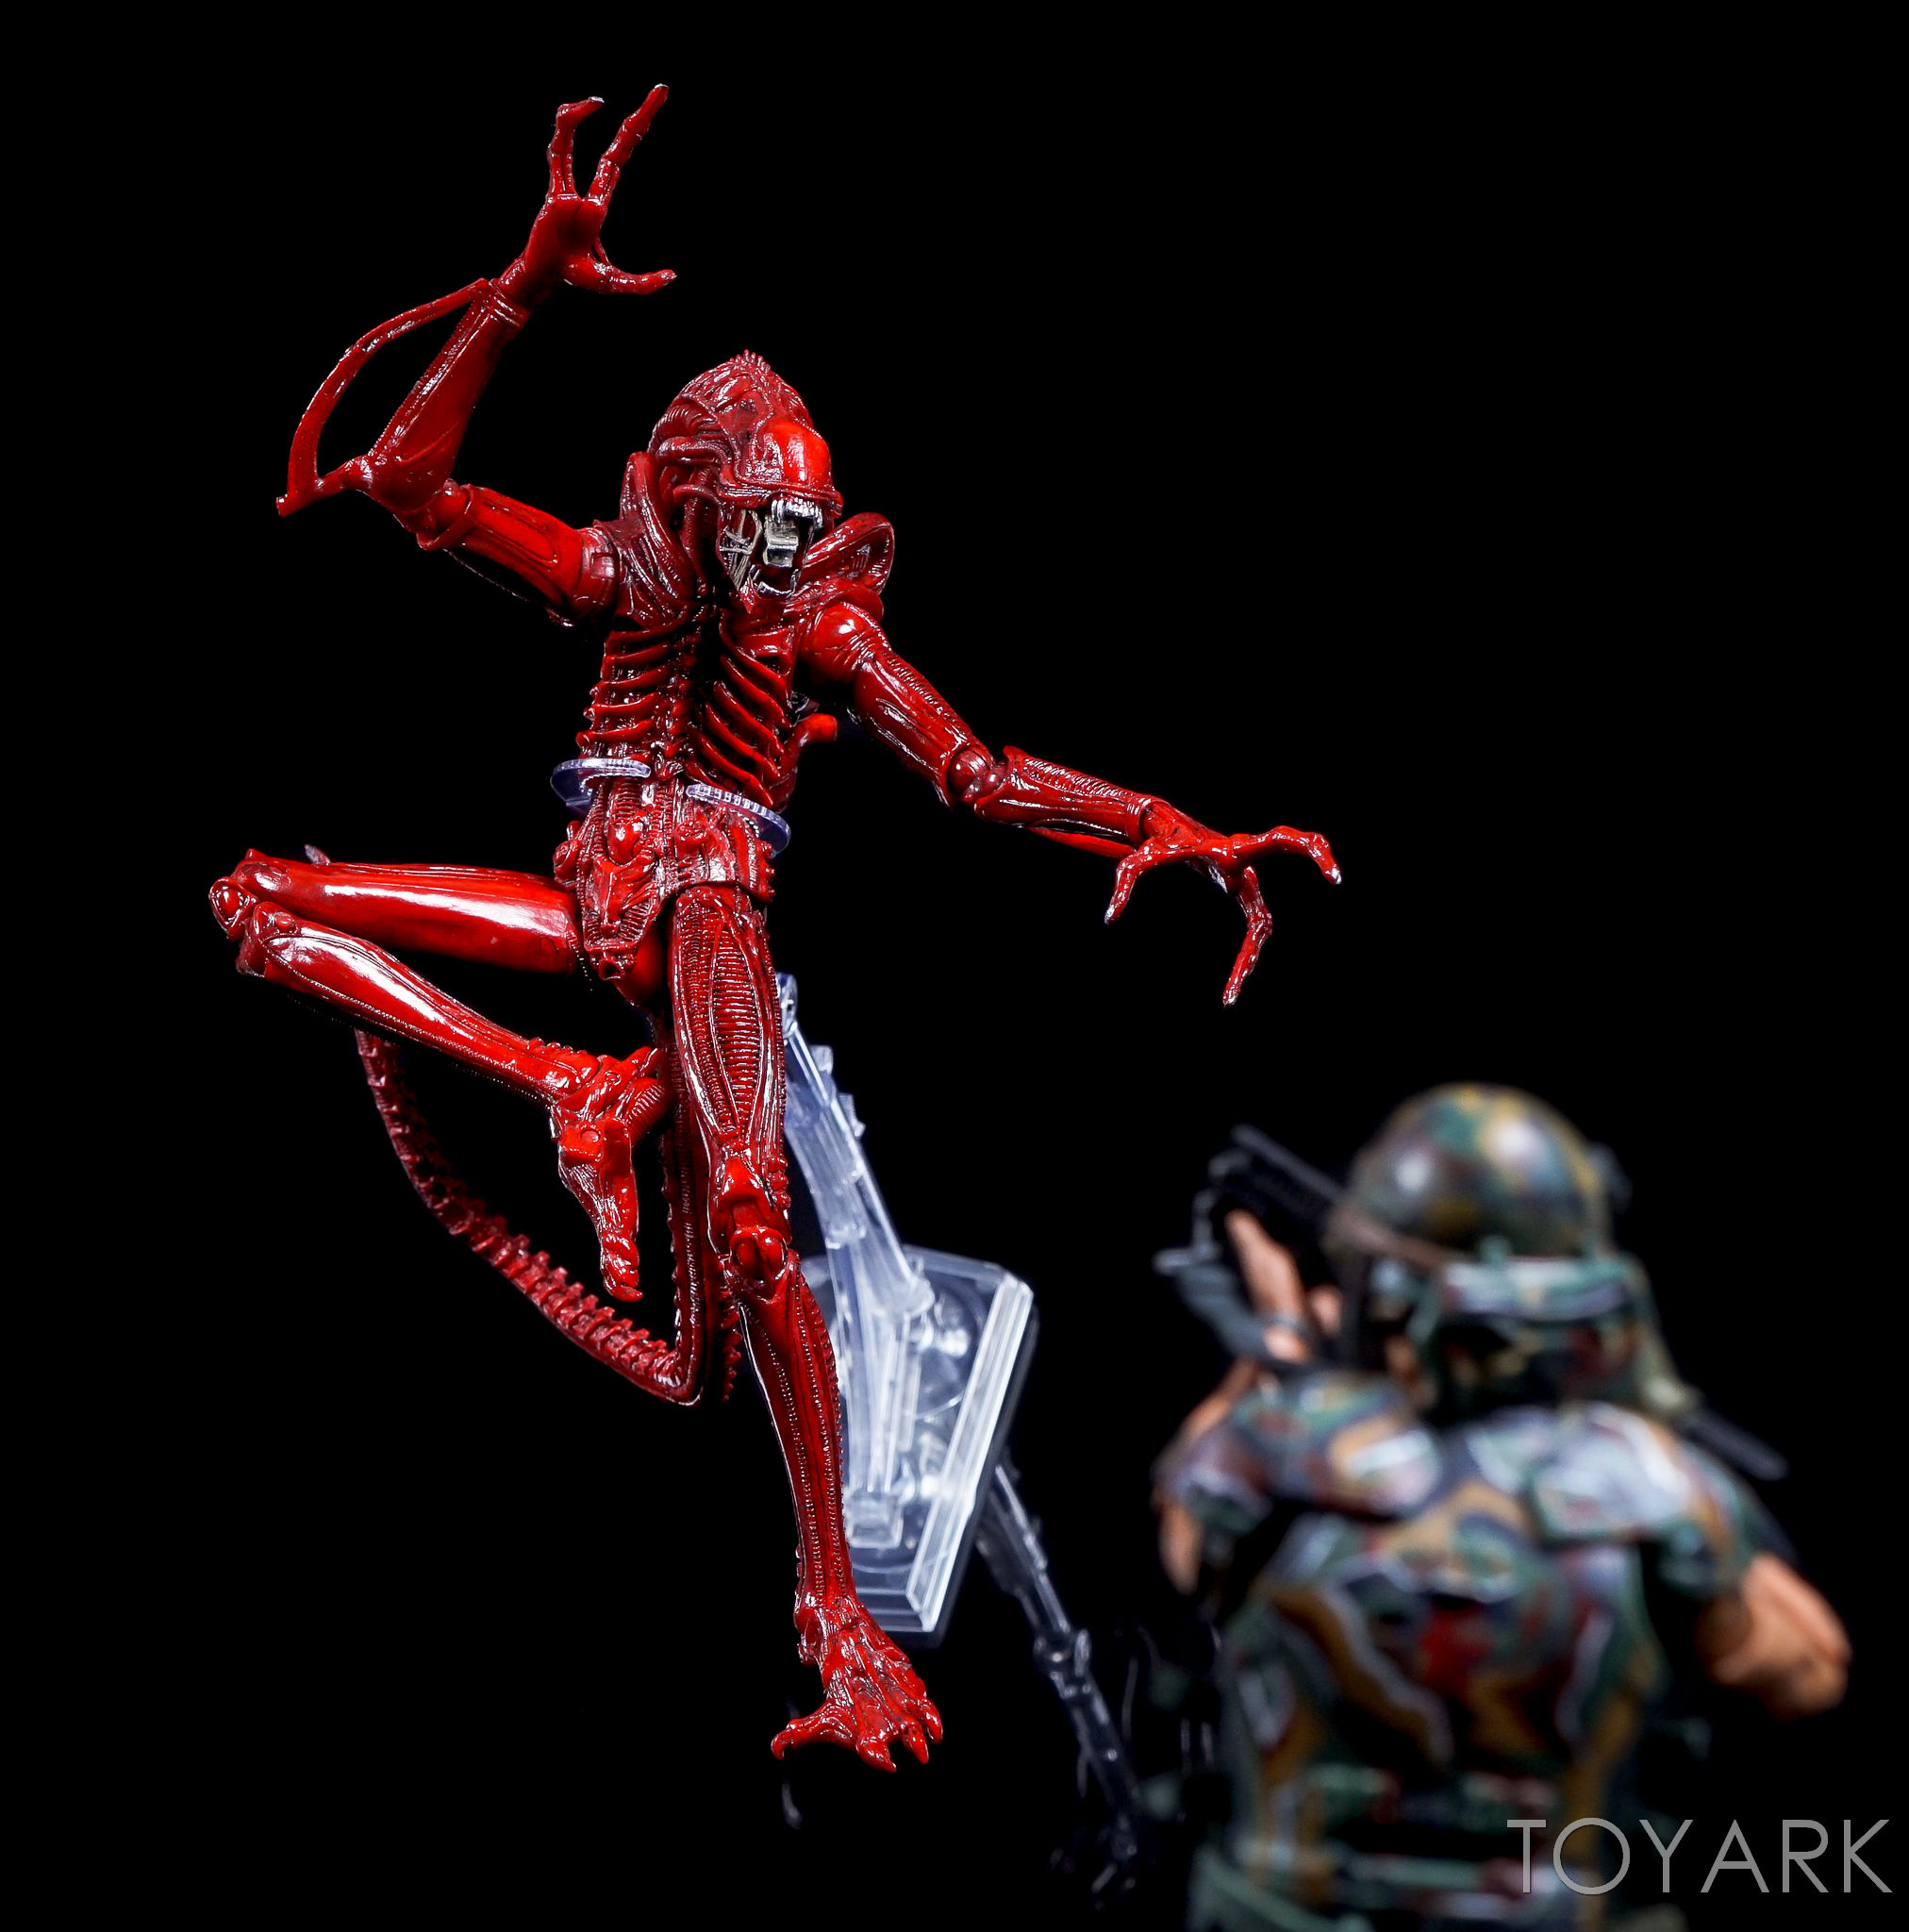 http://news.toyark.com/wp-content/uploads/sites/4/2016/09/Dynamic-Figure-Stand-NECA-027.jpg